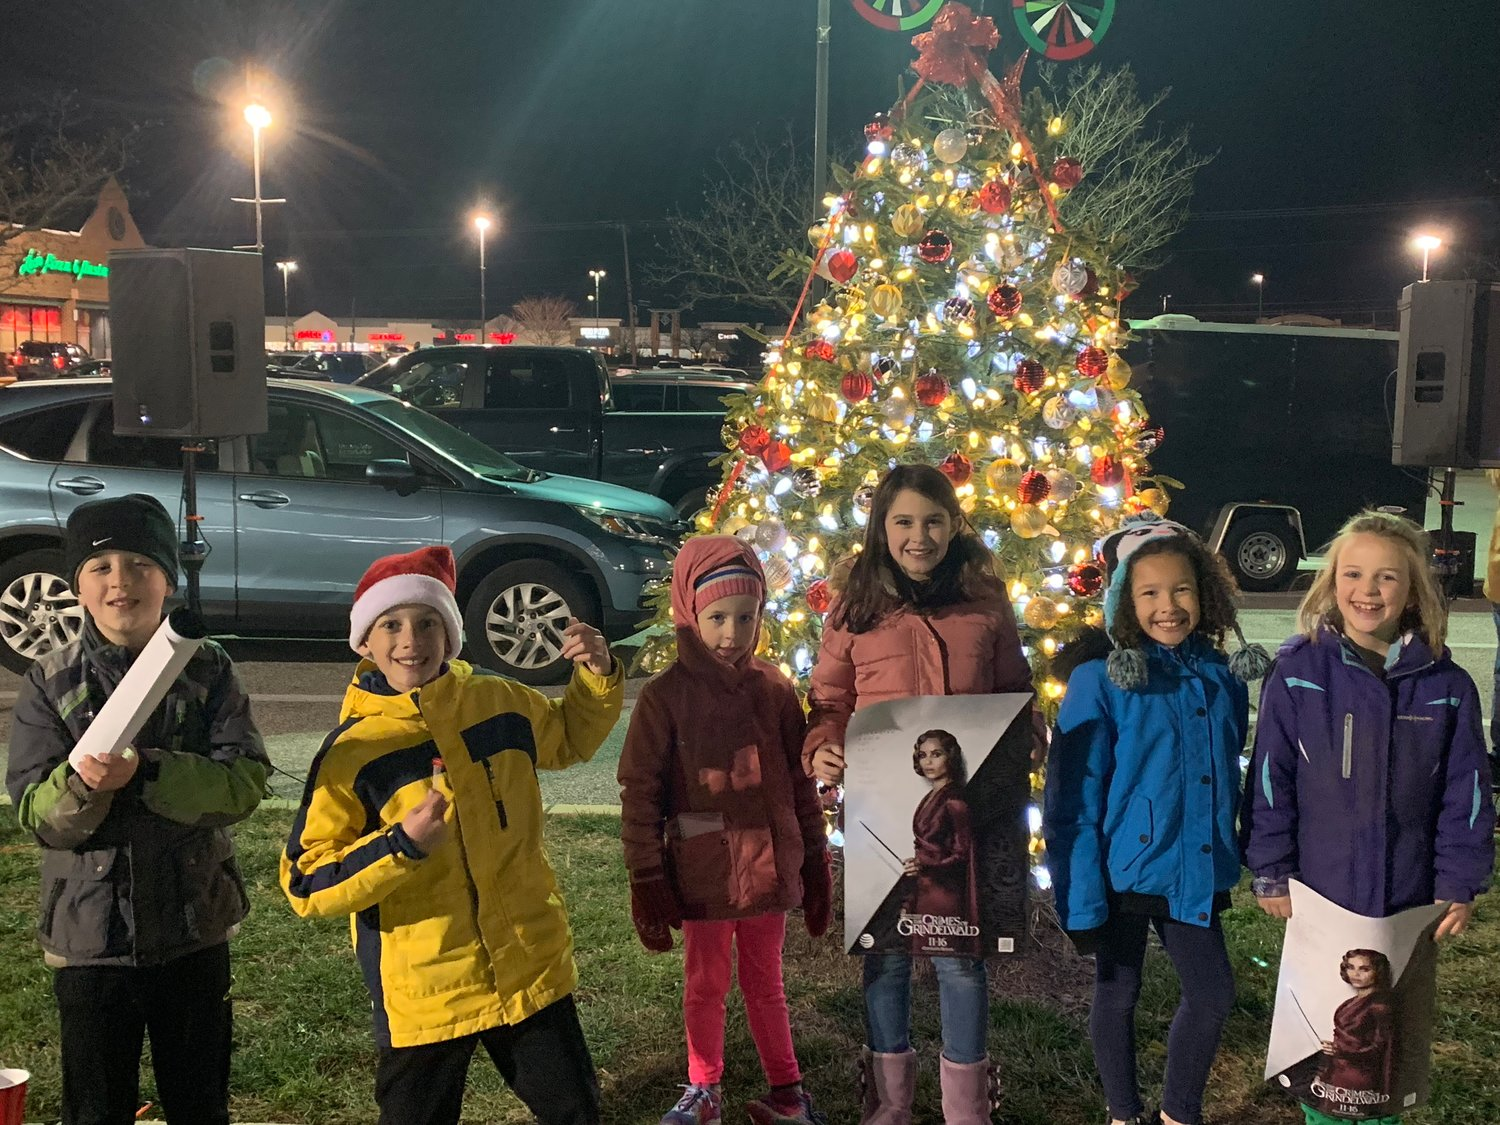 A group of children gathered in front of the Park Plaza Christmas tree after its official first illumination for the season.